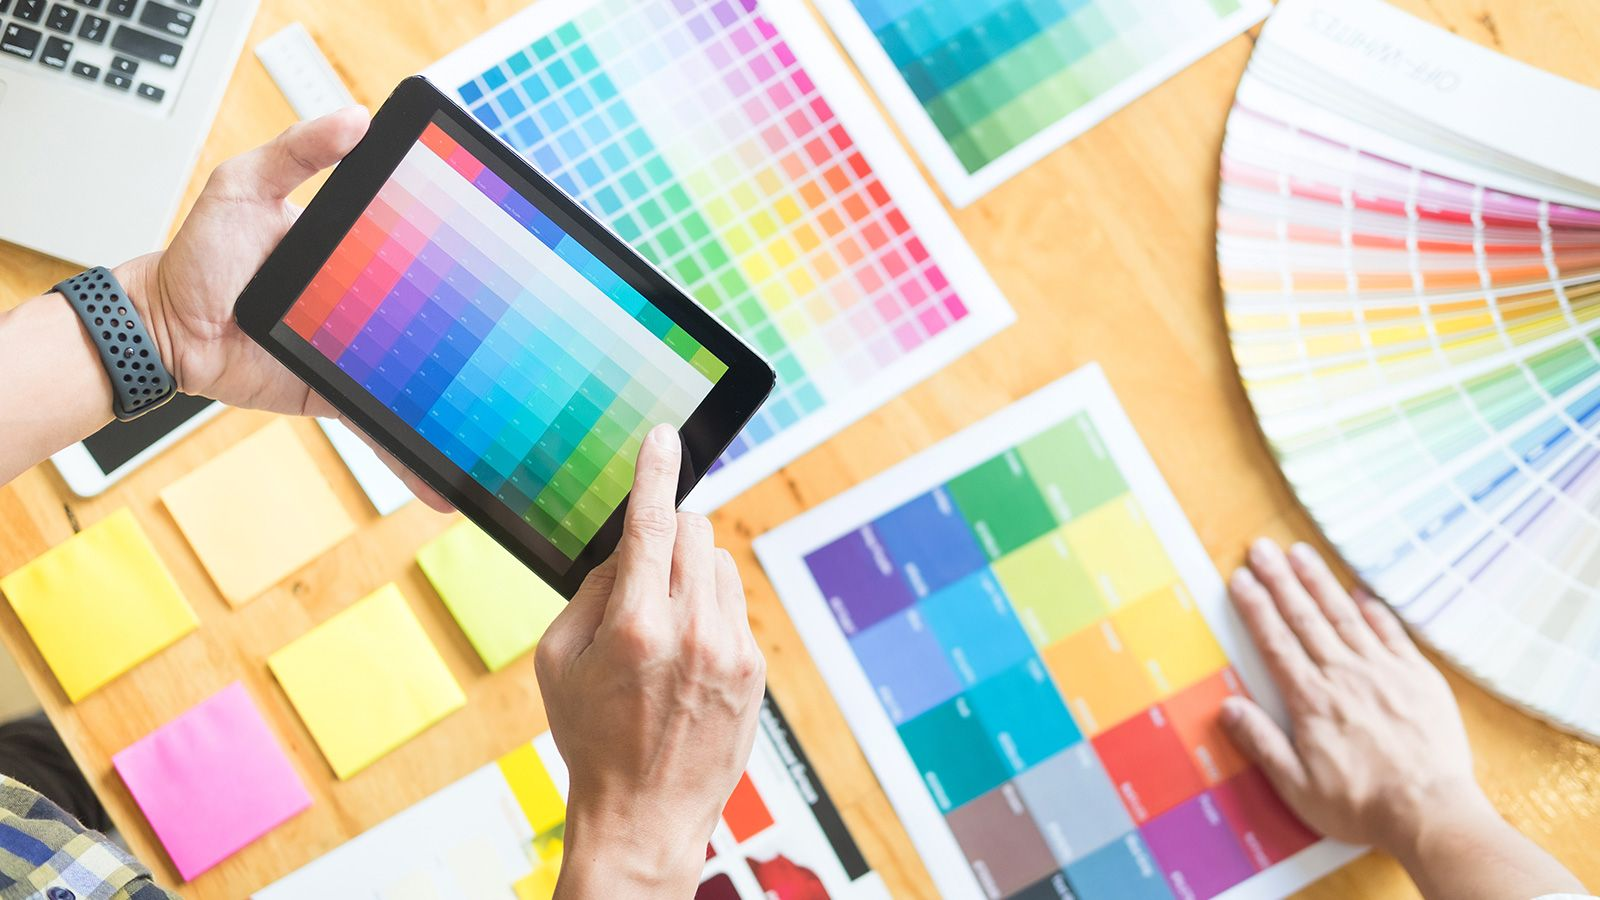 Color Psychology In Marketing: What Colors Make People Want to Buy?